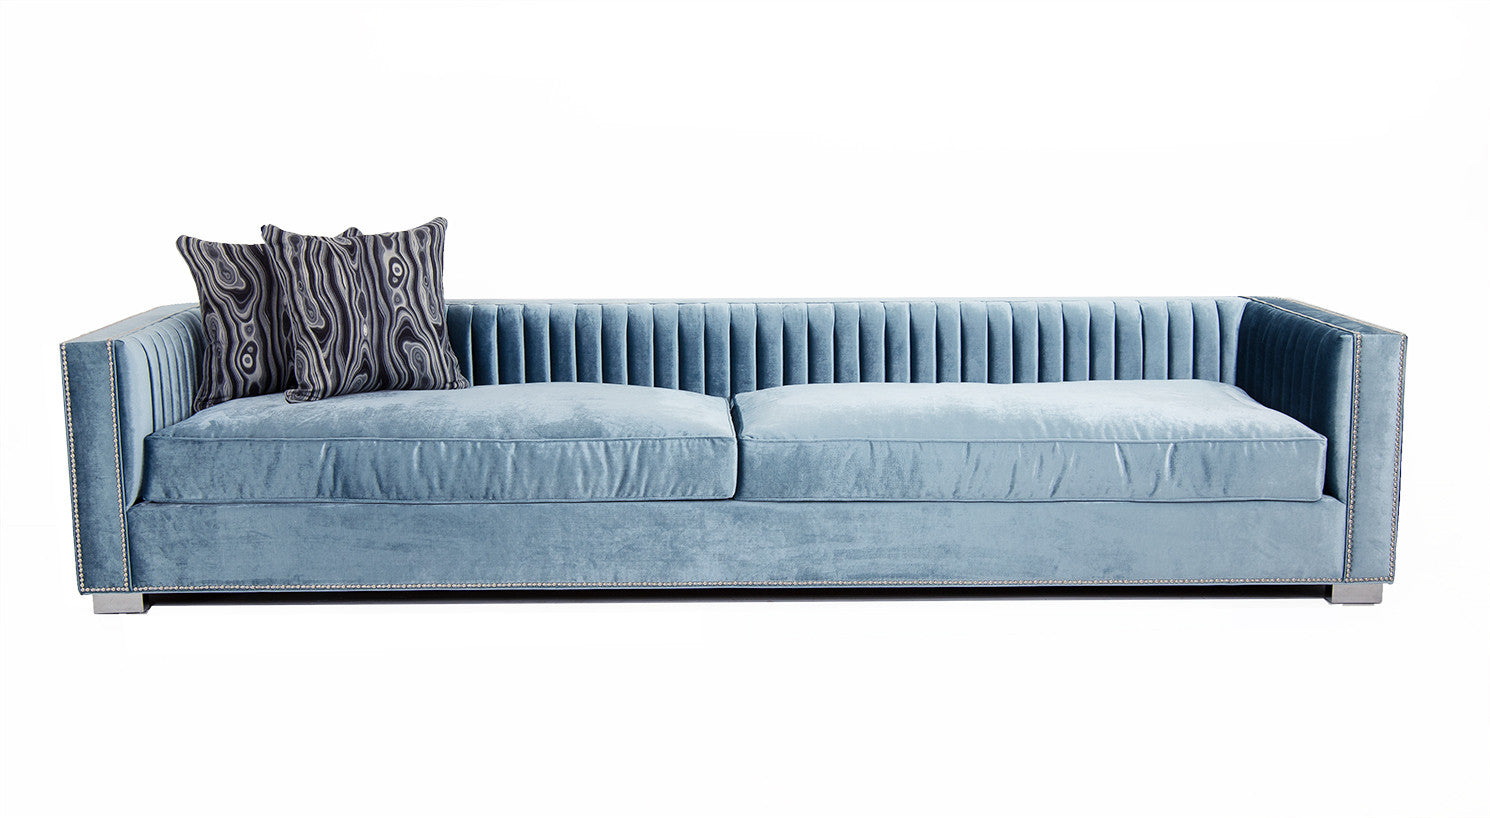 Acapulco sofa in trend denim velvet modshop Denim loveseat